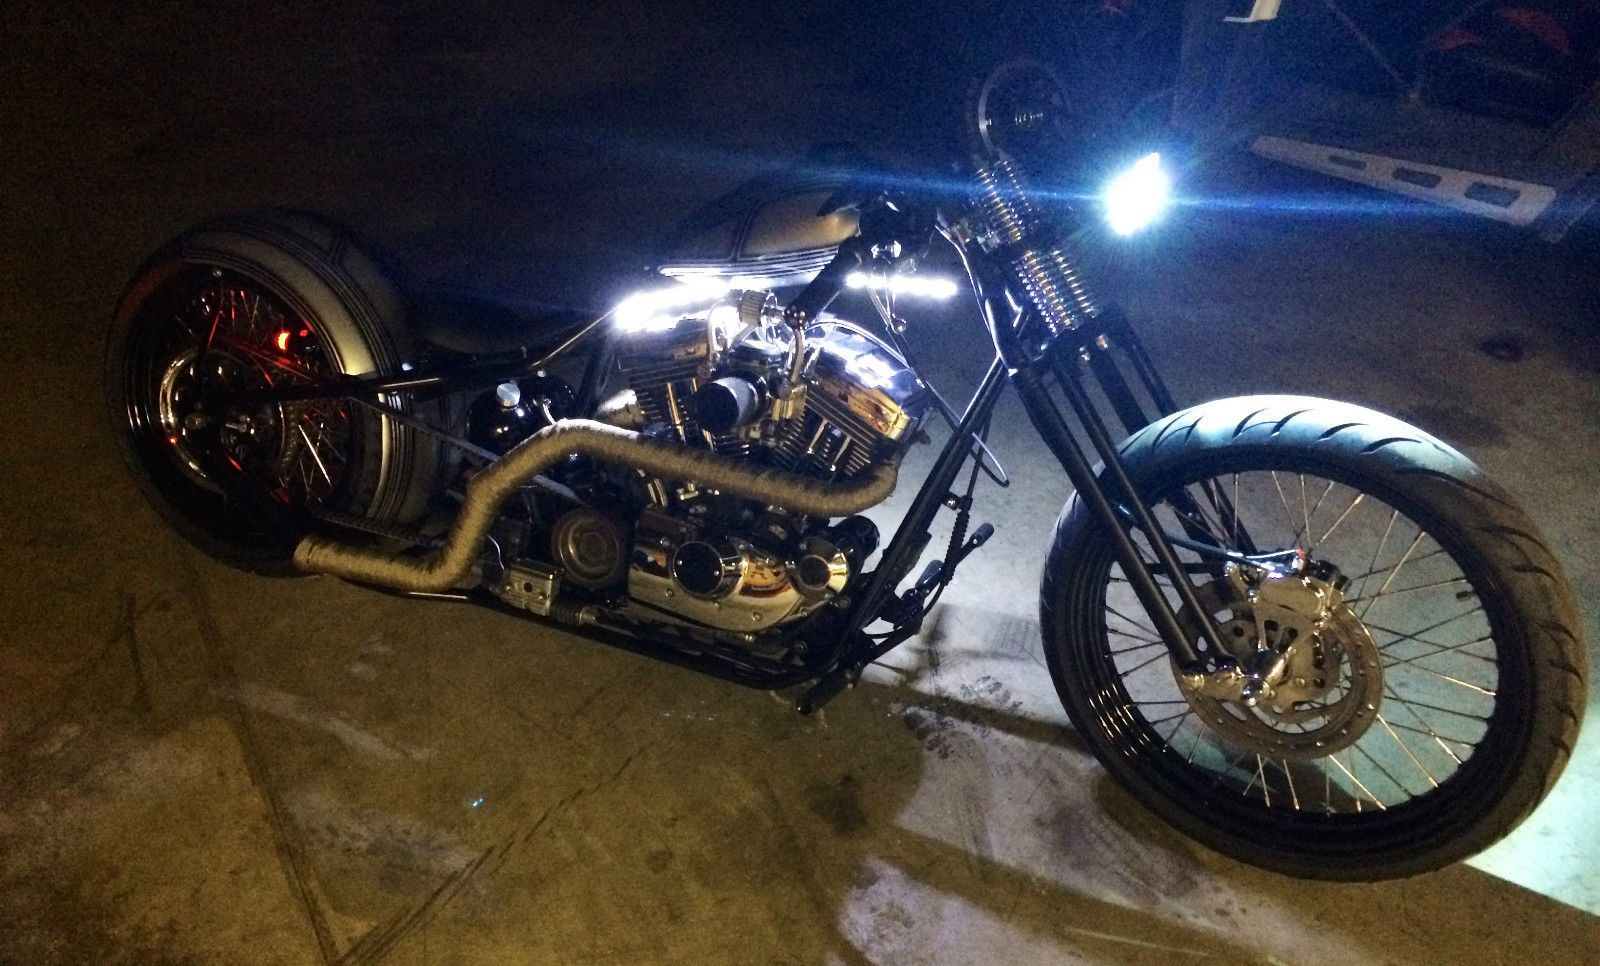 """2001 Custom 1200 Sportster Custom rigid frame, Springer front end with caliper, 250 rear tire, 18"""" rear wheel, 23"""" front wheel, LED bullet style brake lights, LED light strip under gas tank, HID 8k Headlight, Custom dual exhaust, Custom intake, Solo seat with 2"""" springs, Oil tank with all steel braided lines, Arlen ness pegs/grips, Custom paint done by JP Customs"""